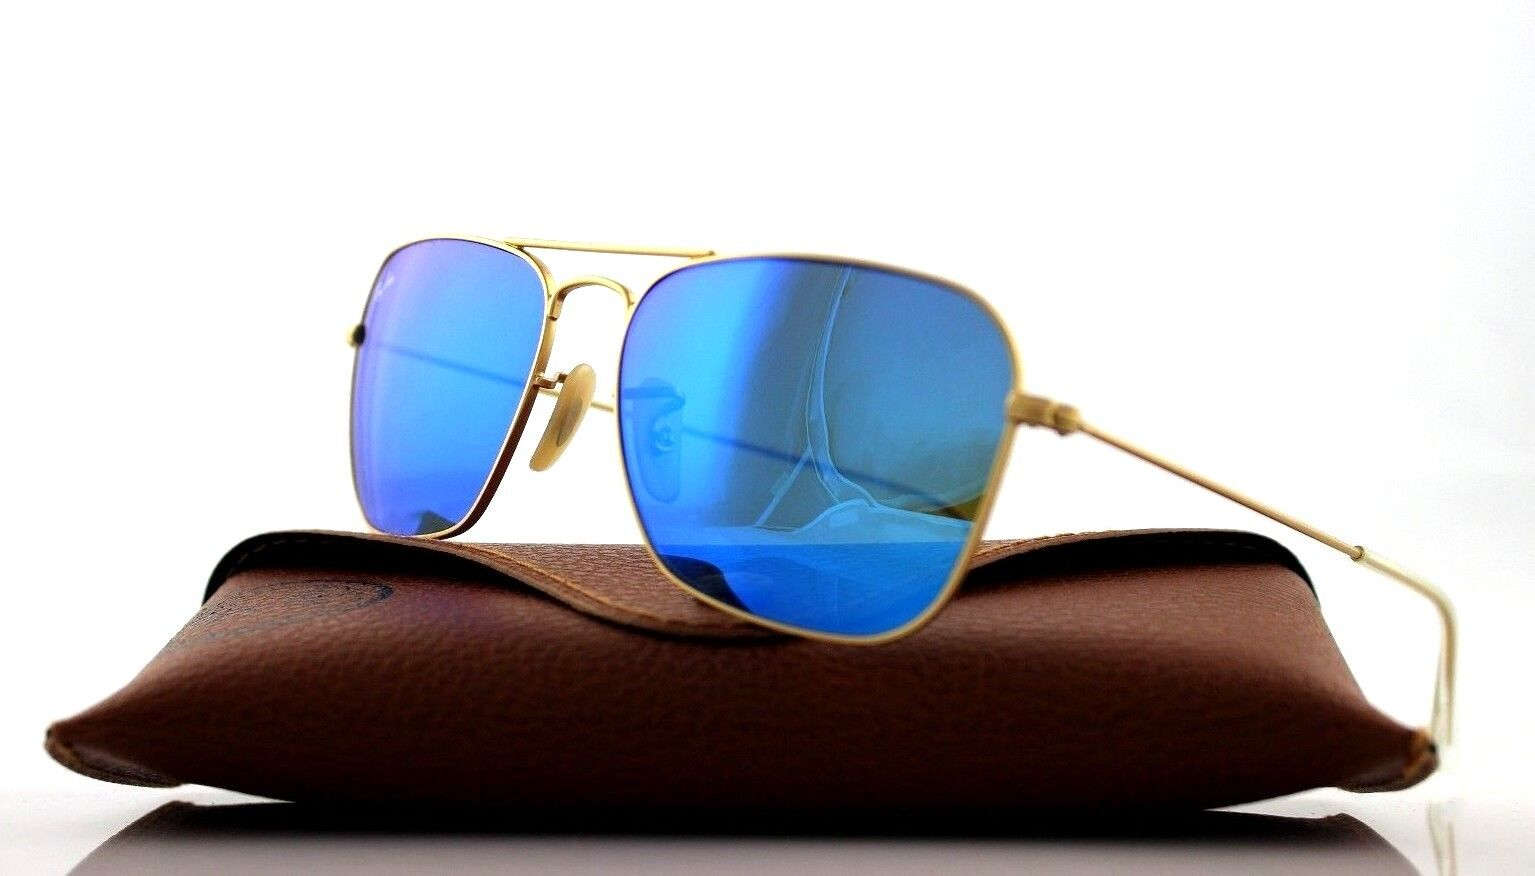 8a17ed3816f Sunglasses Ray-Ban Caravan Rb3136 112 17 55 Matte Gold Blue for sale ...